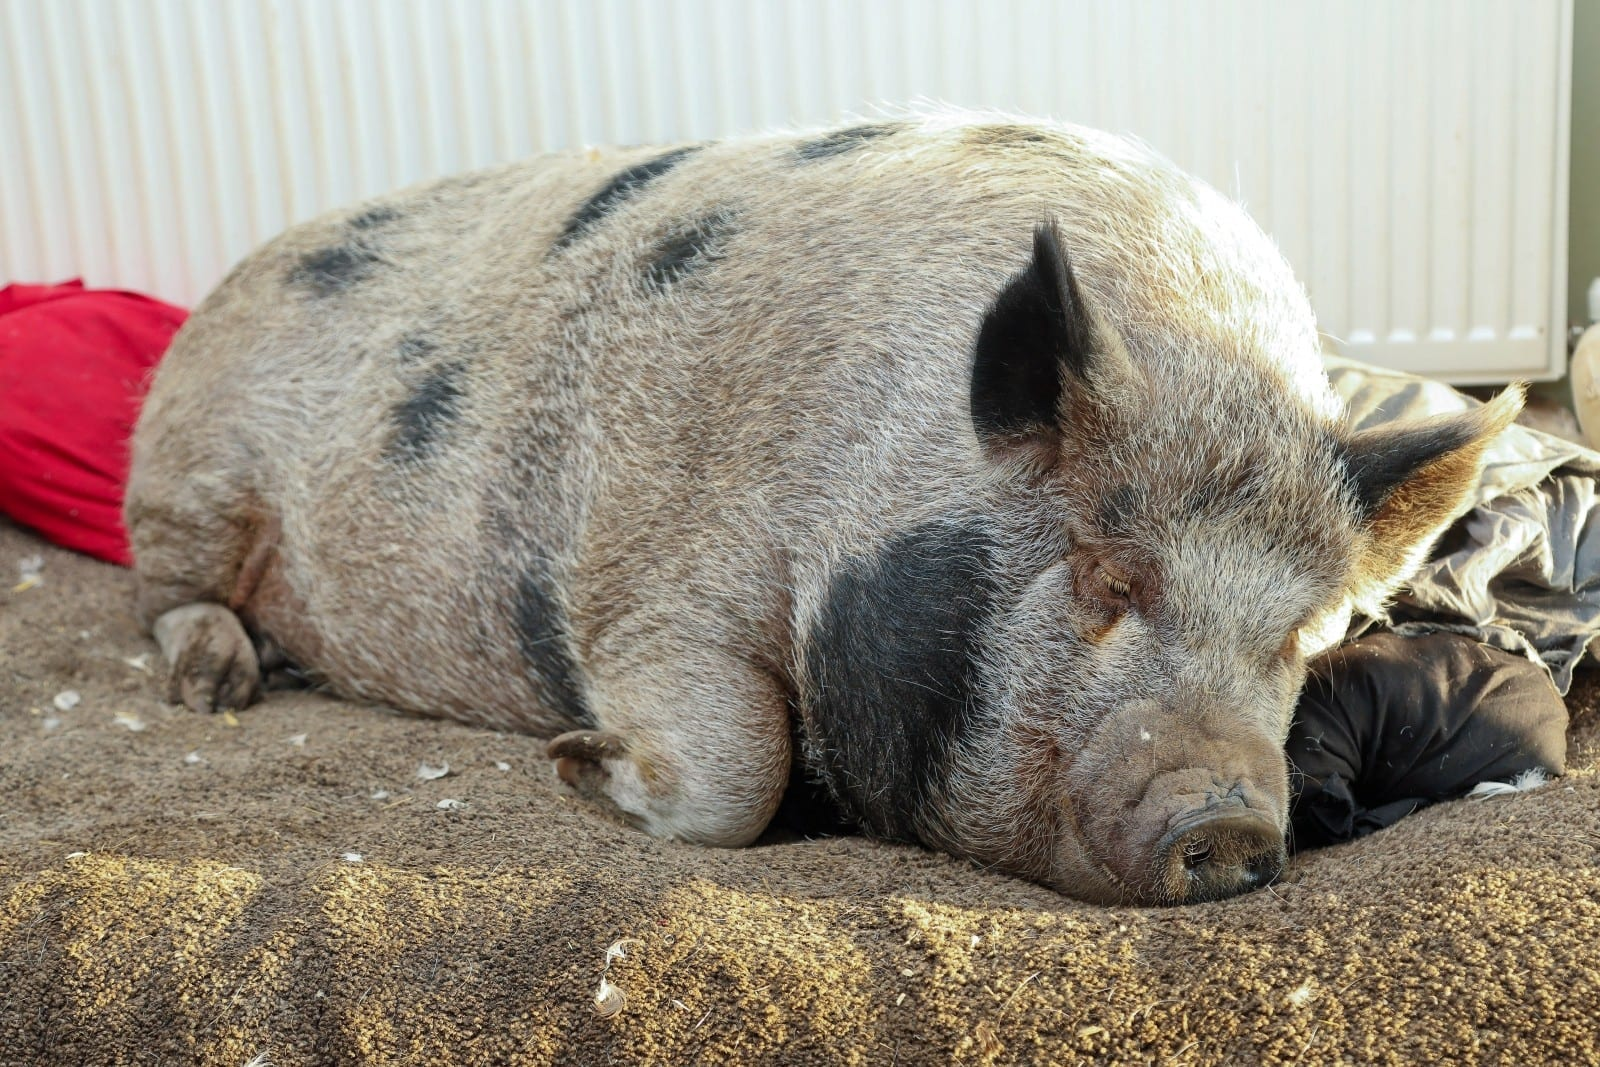 Couple Have Their Home Taken Over By 28 STONE Pig — Which They Adopted Because They Thought It Was A Micro-Animal